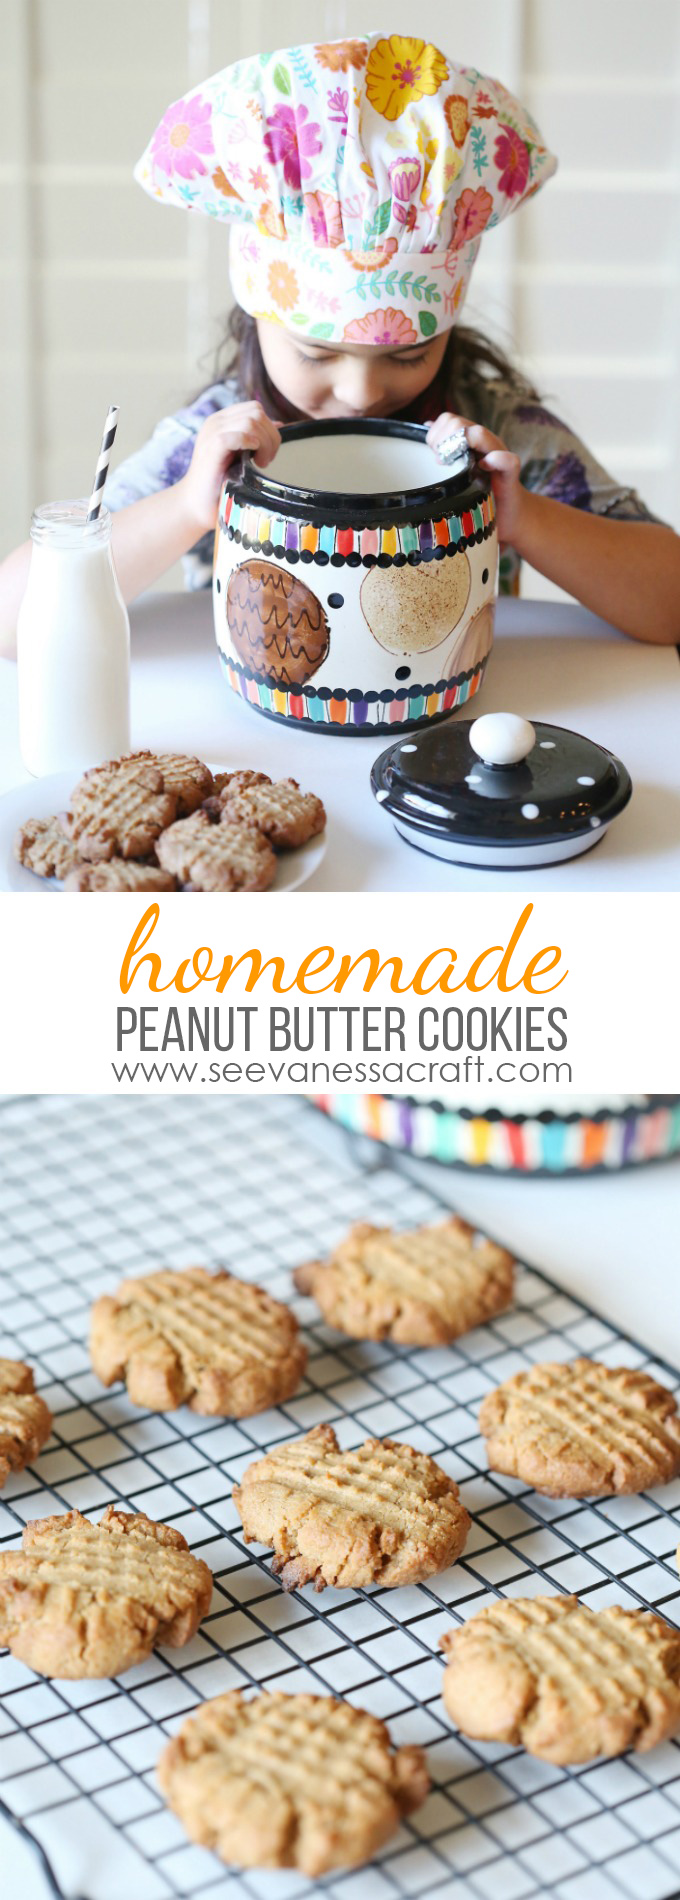 Homemade Dairy Free Peanut Butter Cookies Recipe